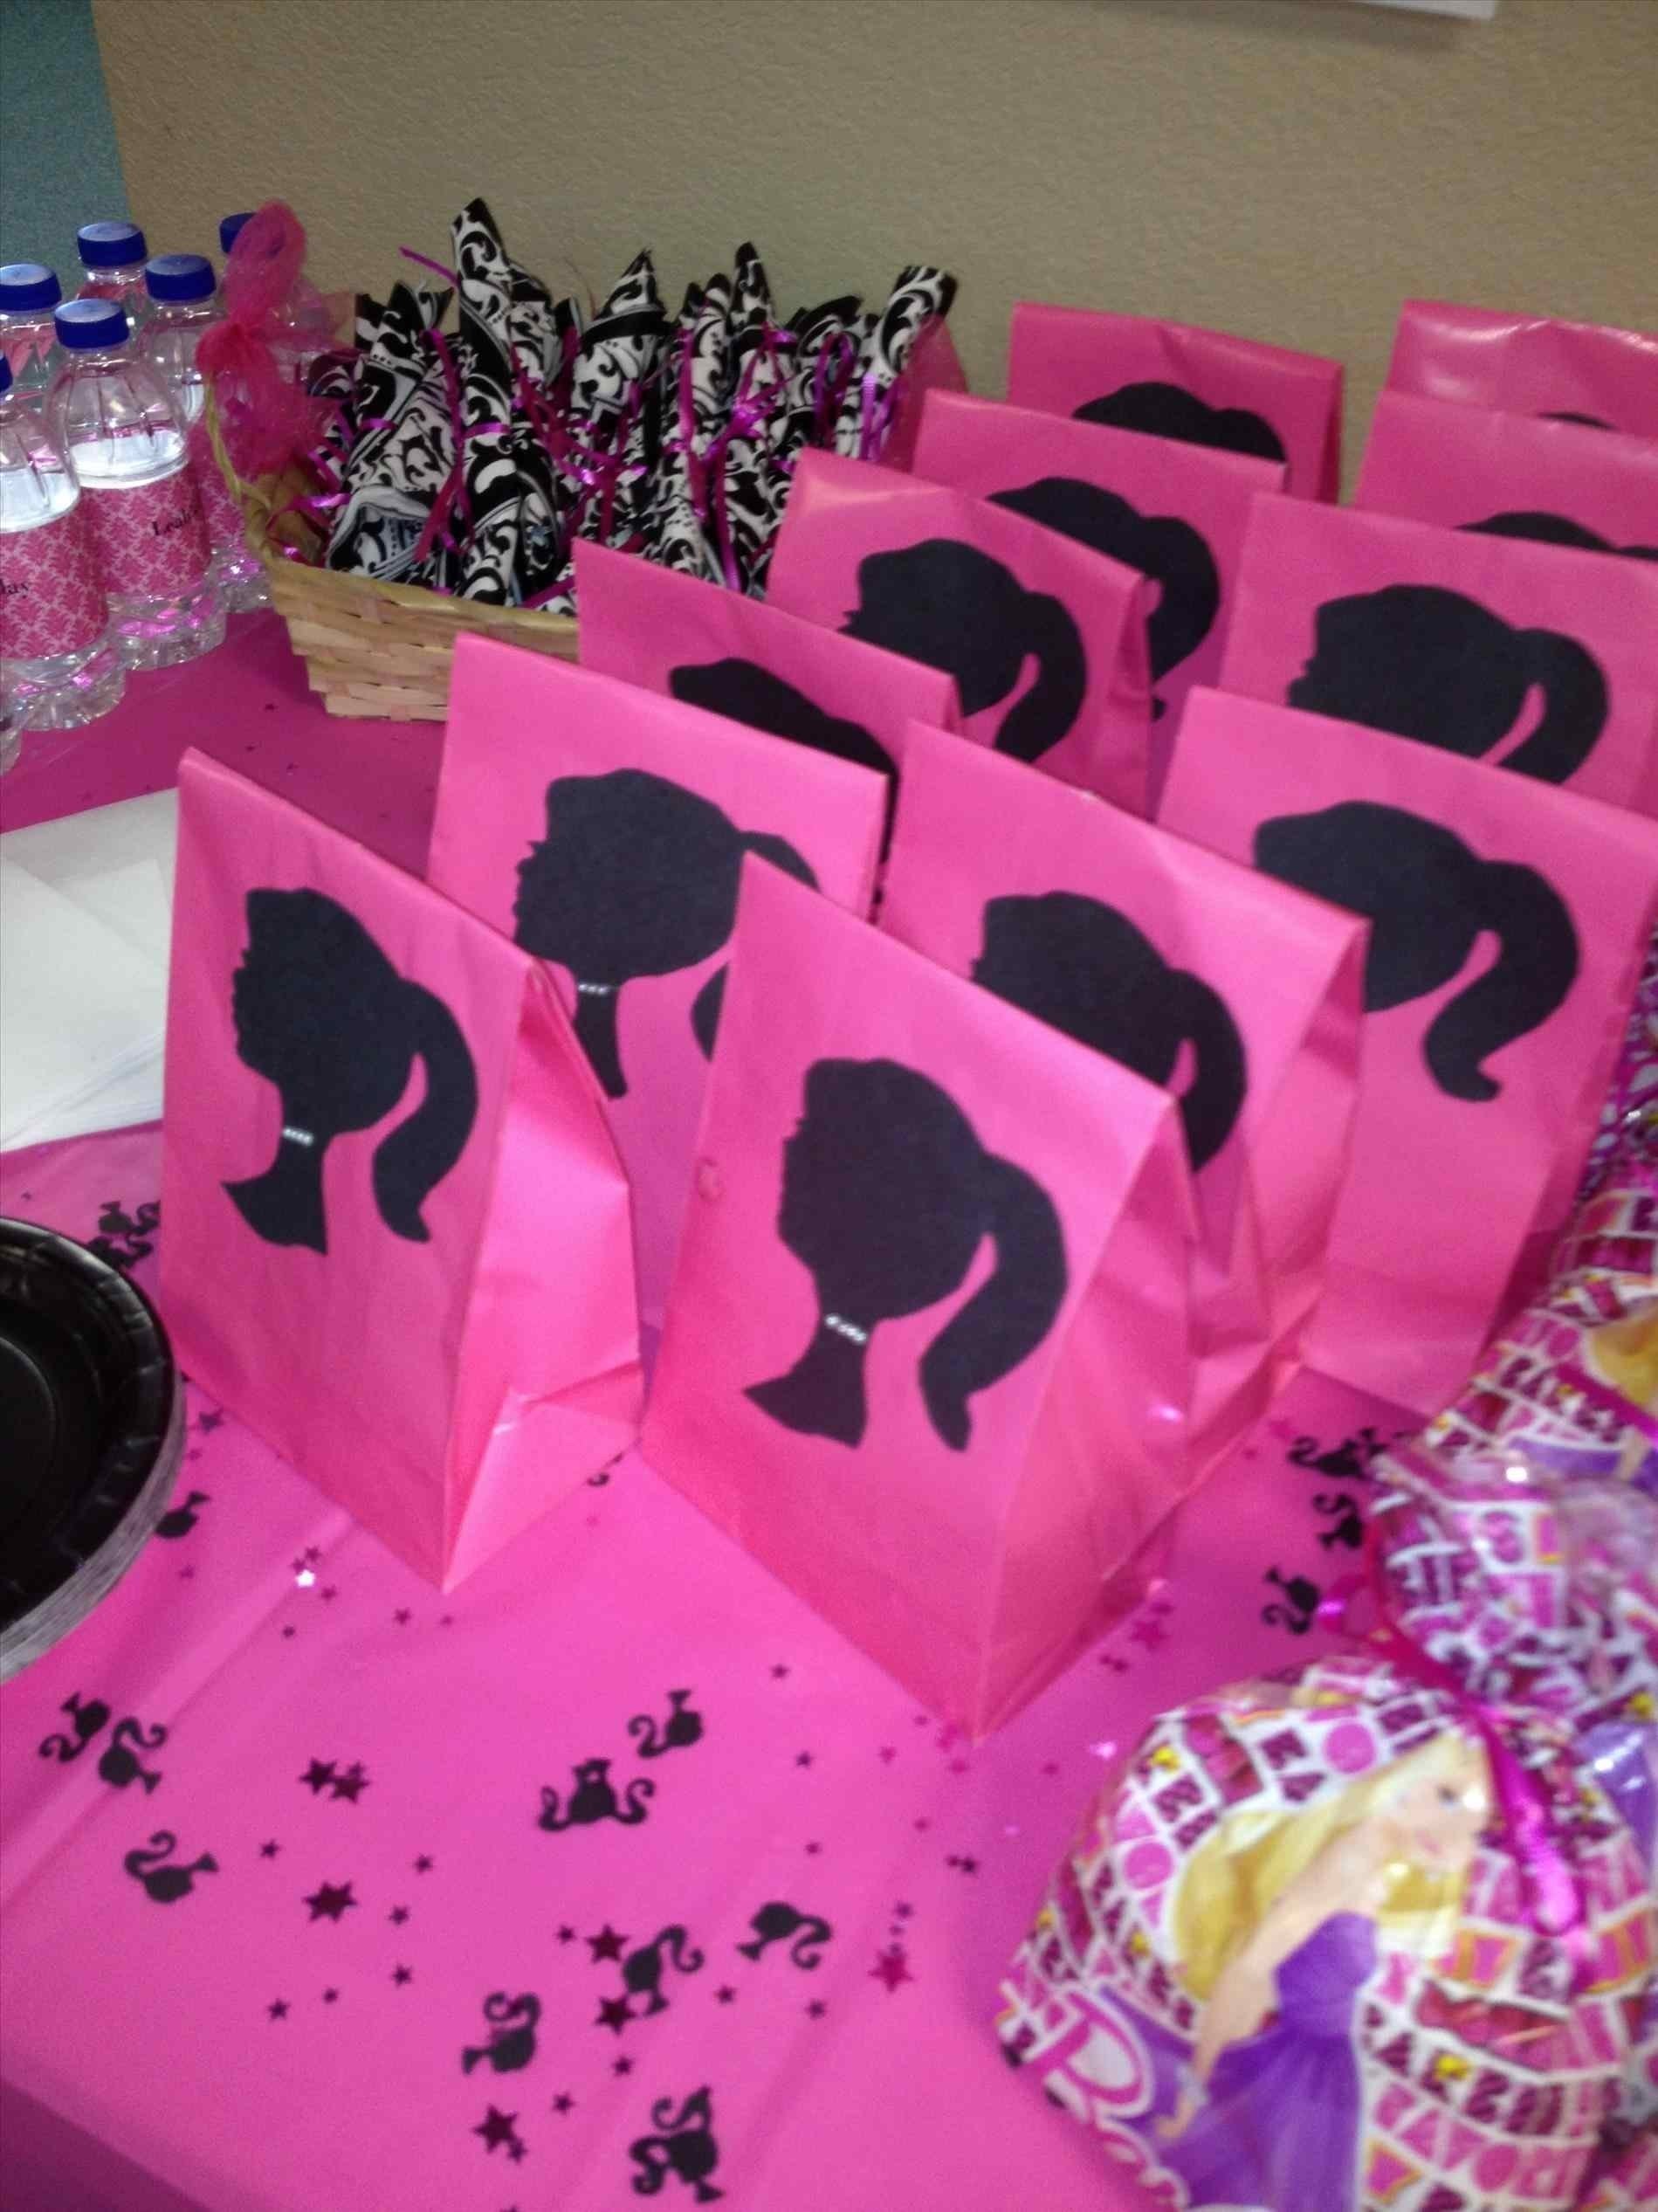 10 Perfect Princess Party Ideas For 5 Year Old and year old chic princess th year barbie party ideas 5 year old old 2021